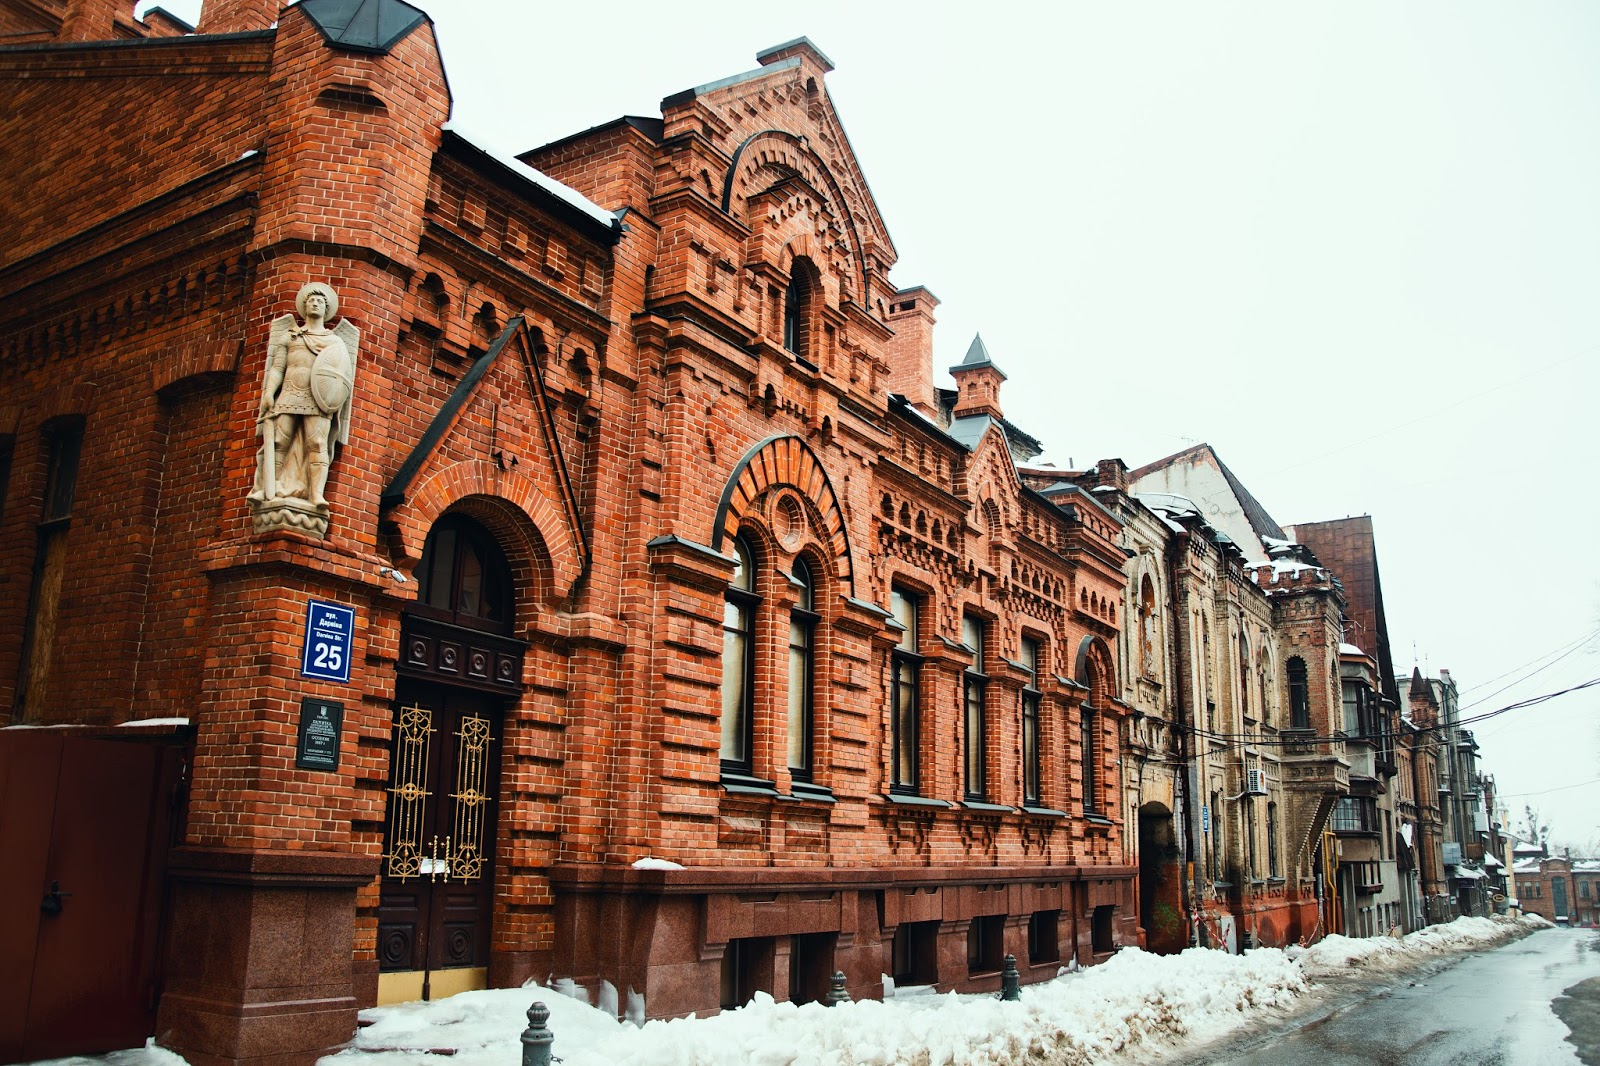 MONUMENTAL BUILDINGS IN UKRAINE: ALEKSEY NIKOLAYEVICH BEKETOV